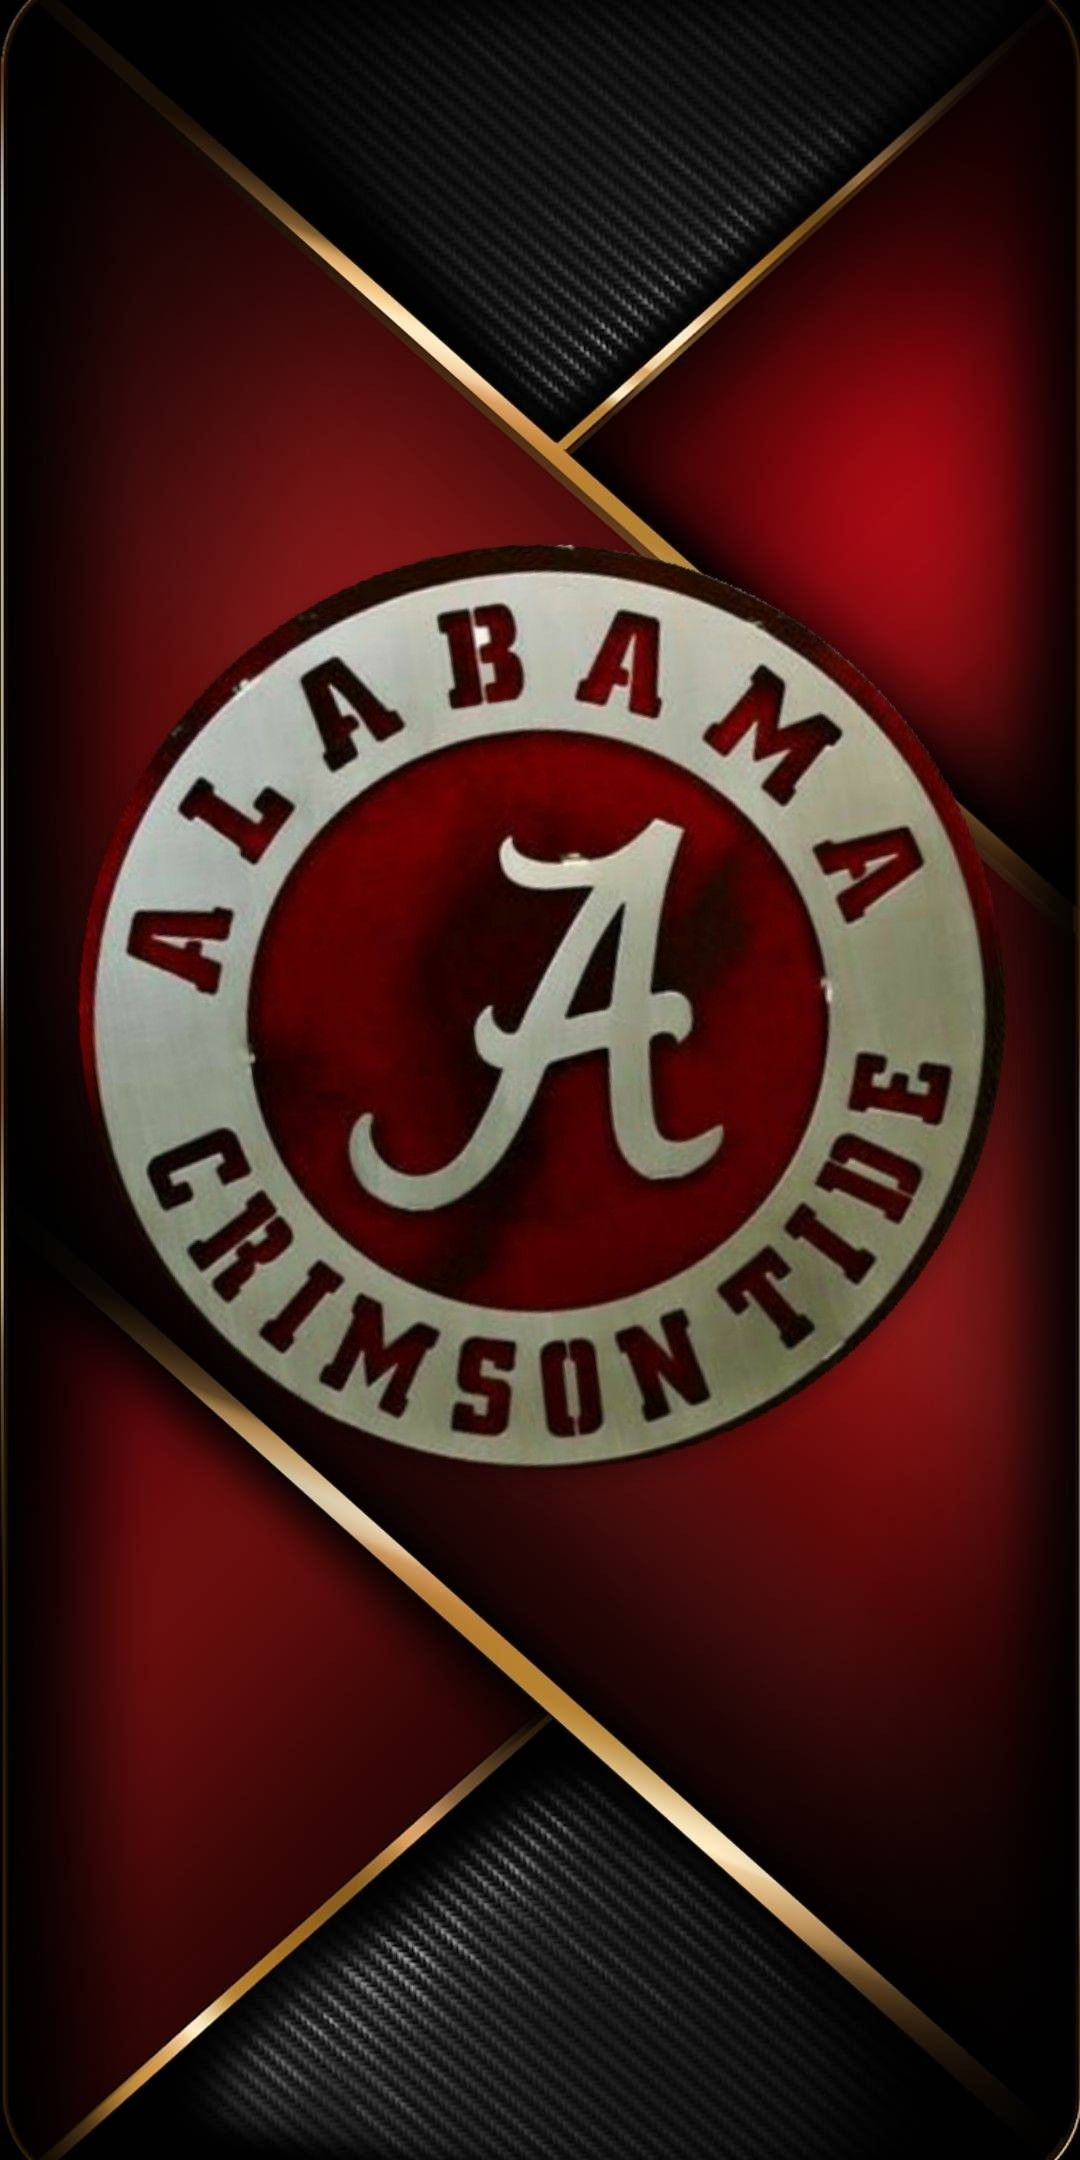 Roll Tide Alabama Crimson Tide Football Wallpaper Alabama